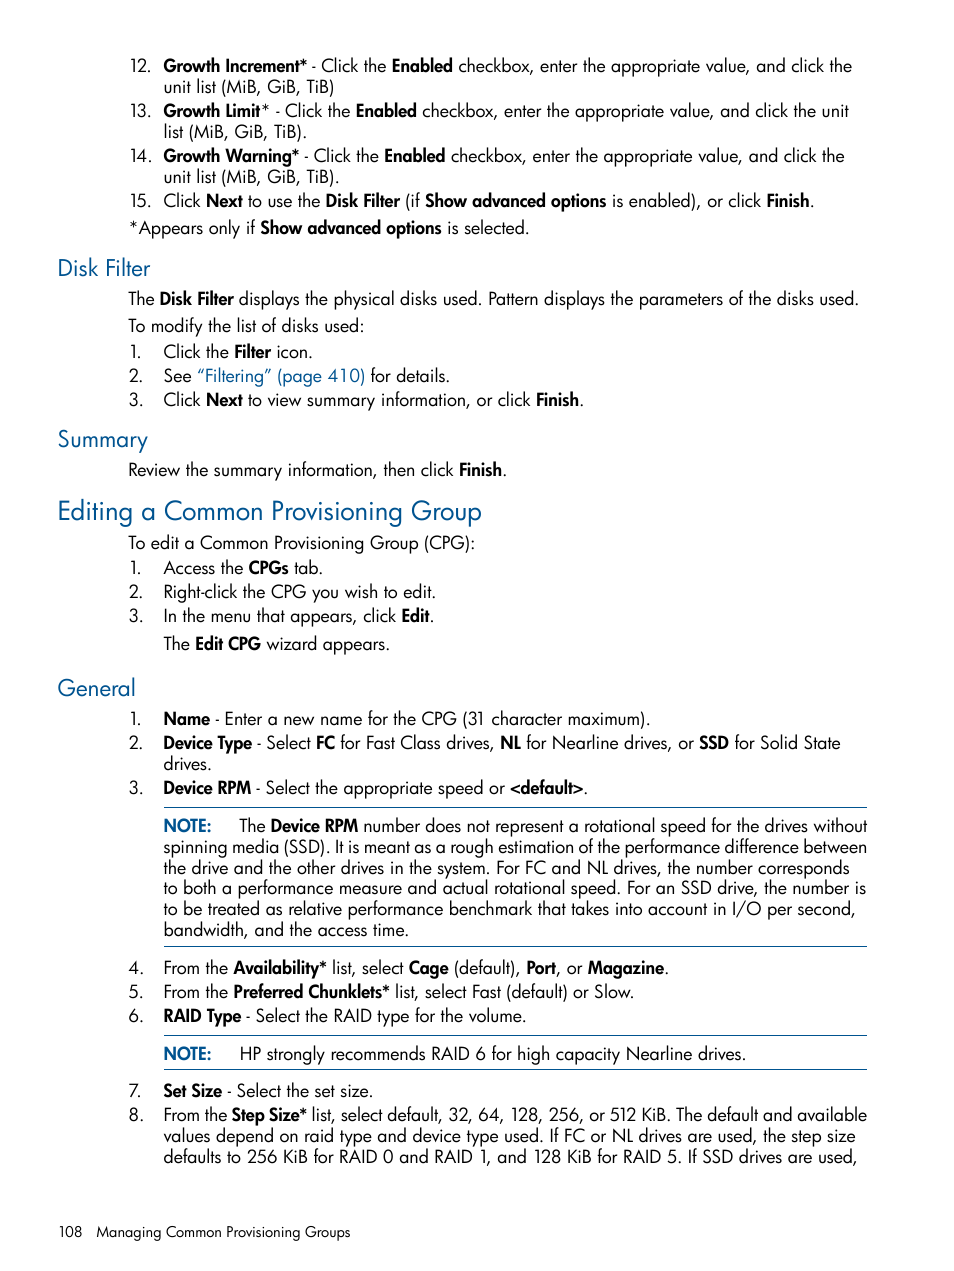 Disk filter, Summary, Editing a common provisioning group | HP 3PAR